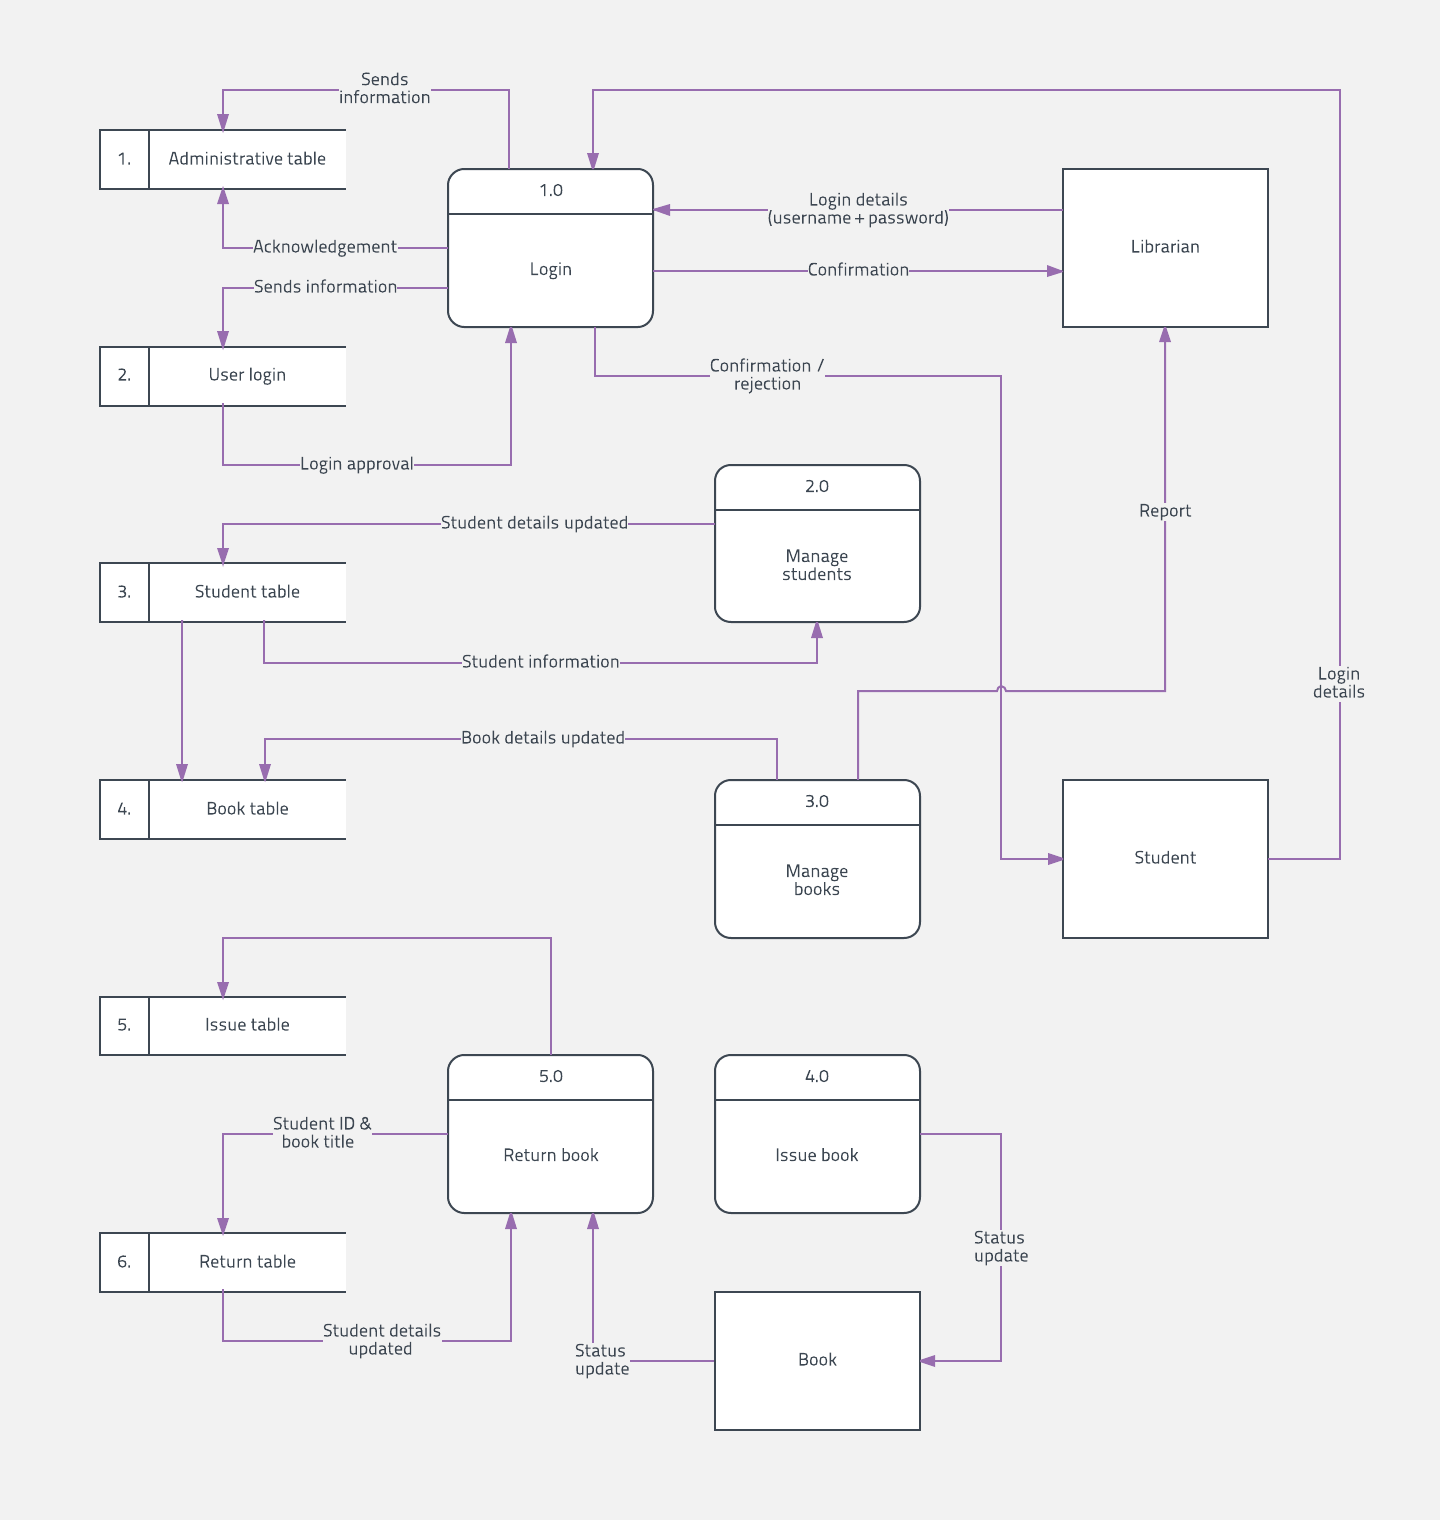 sharing your data flow diagram - Data Flow Diagram Elements